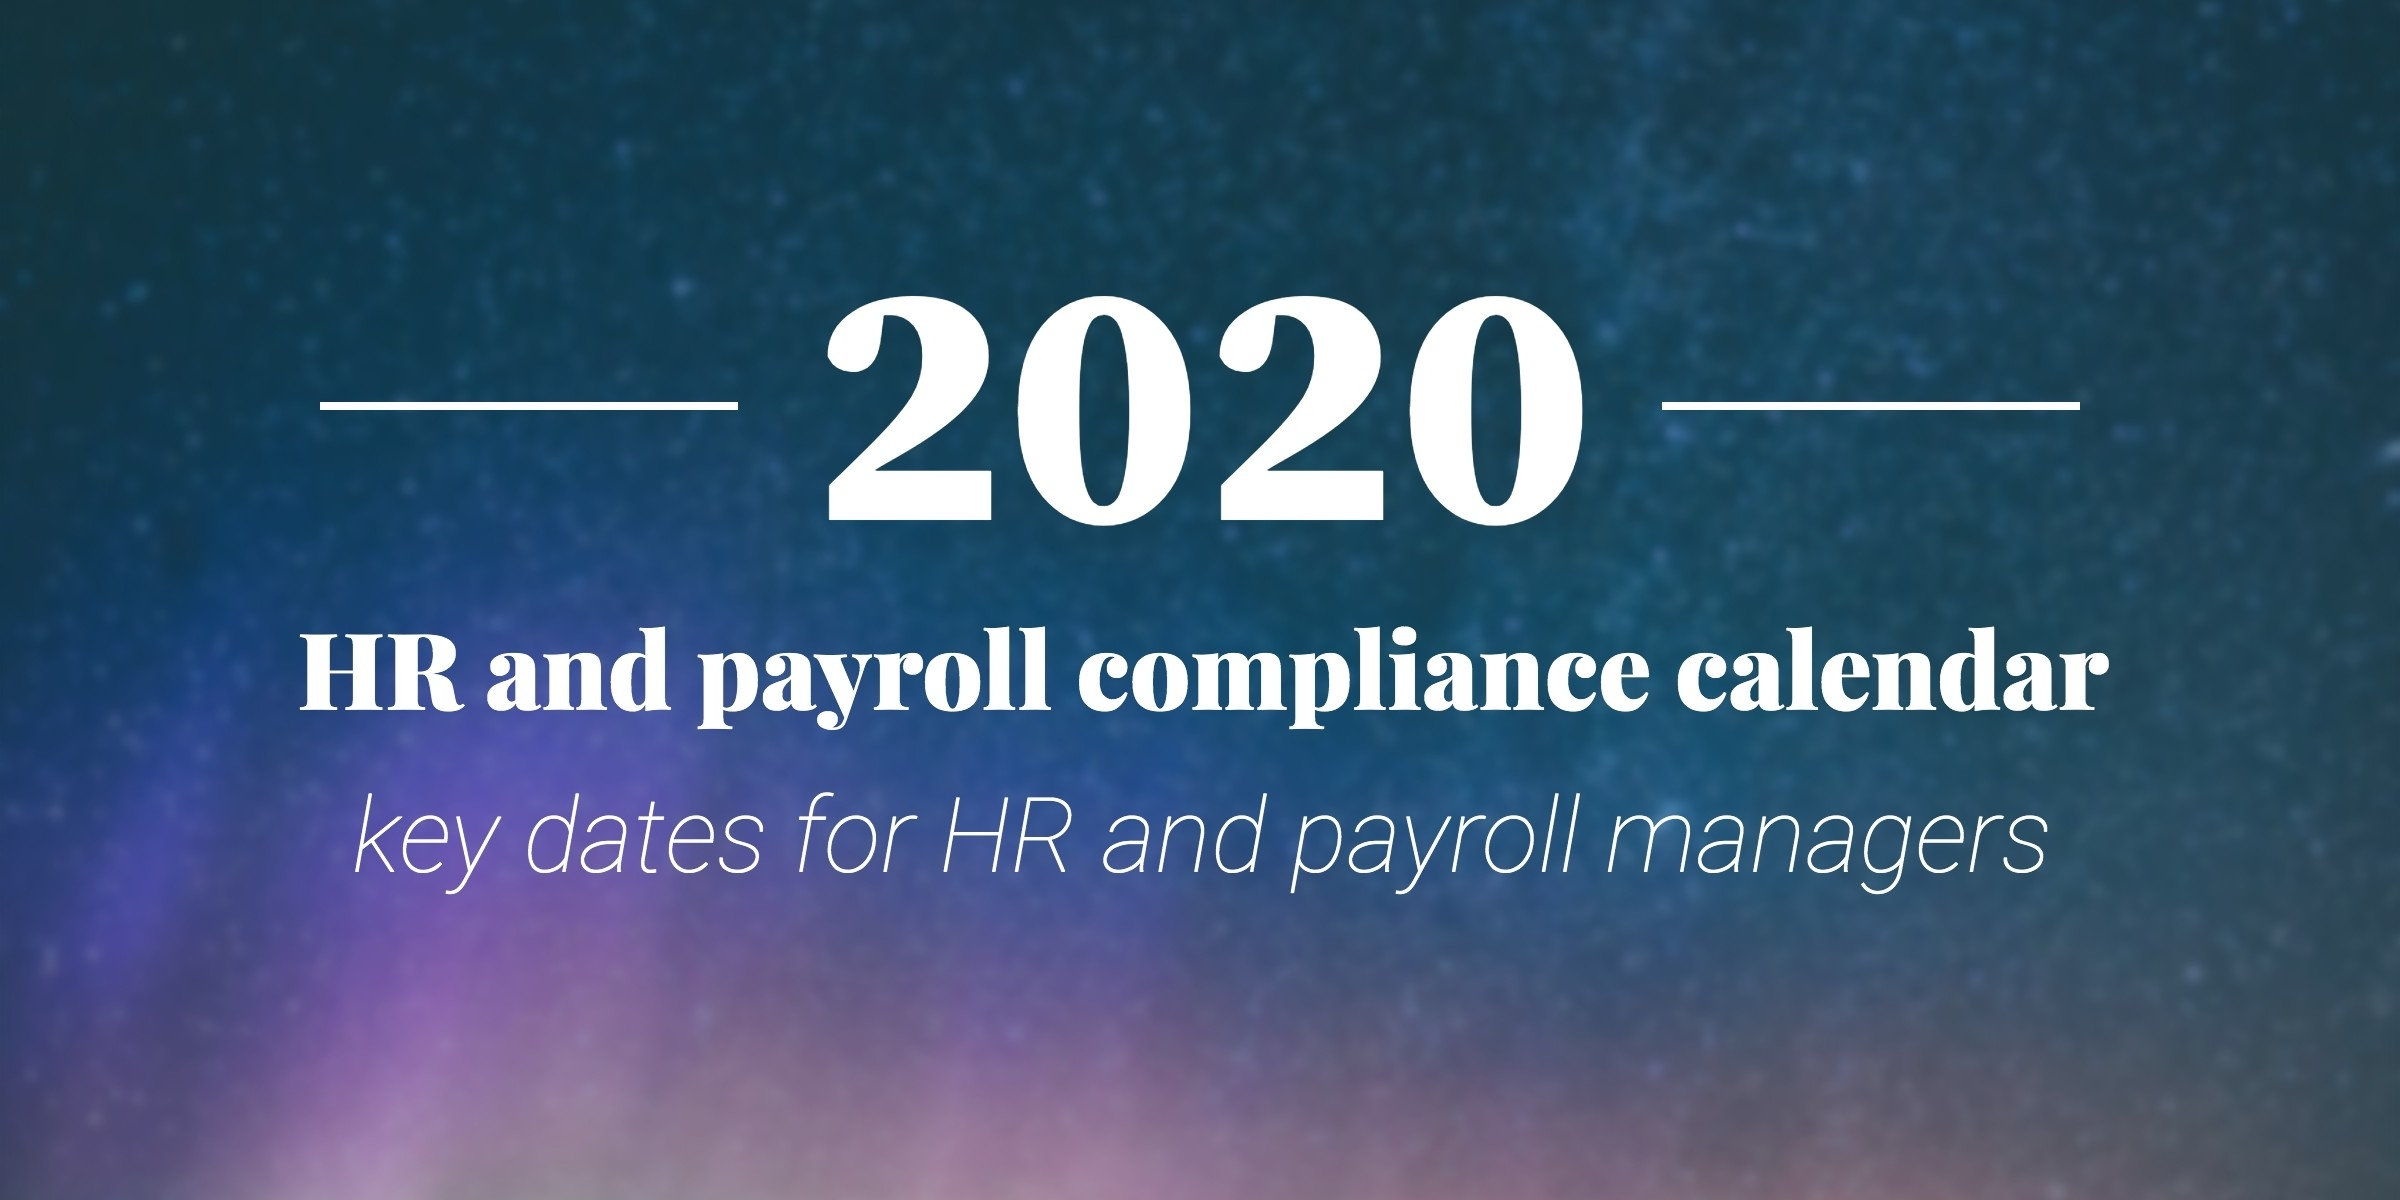 2020 Hr And Payroll Compliance Calendar: Key Dates For Hr